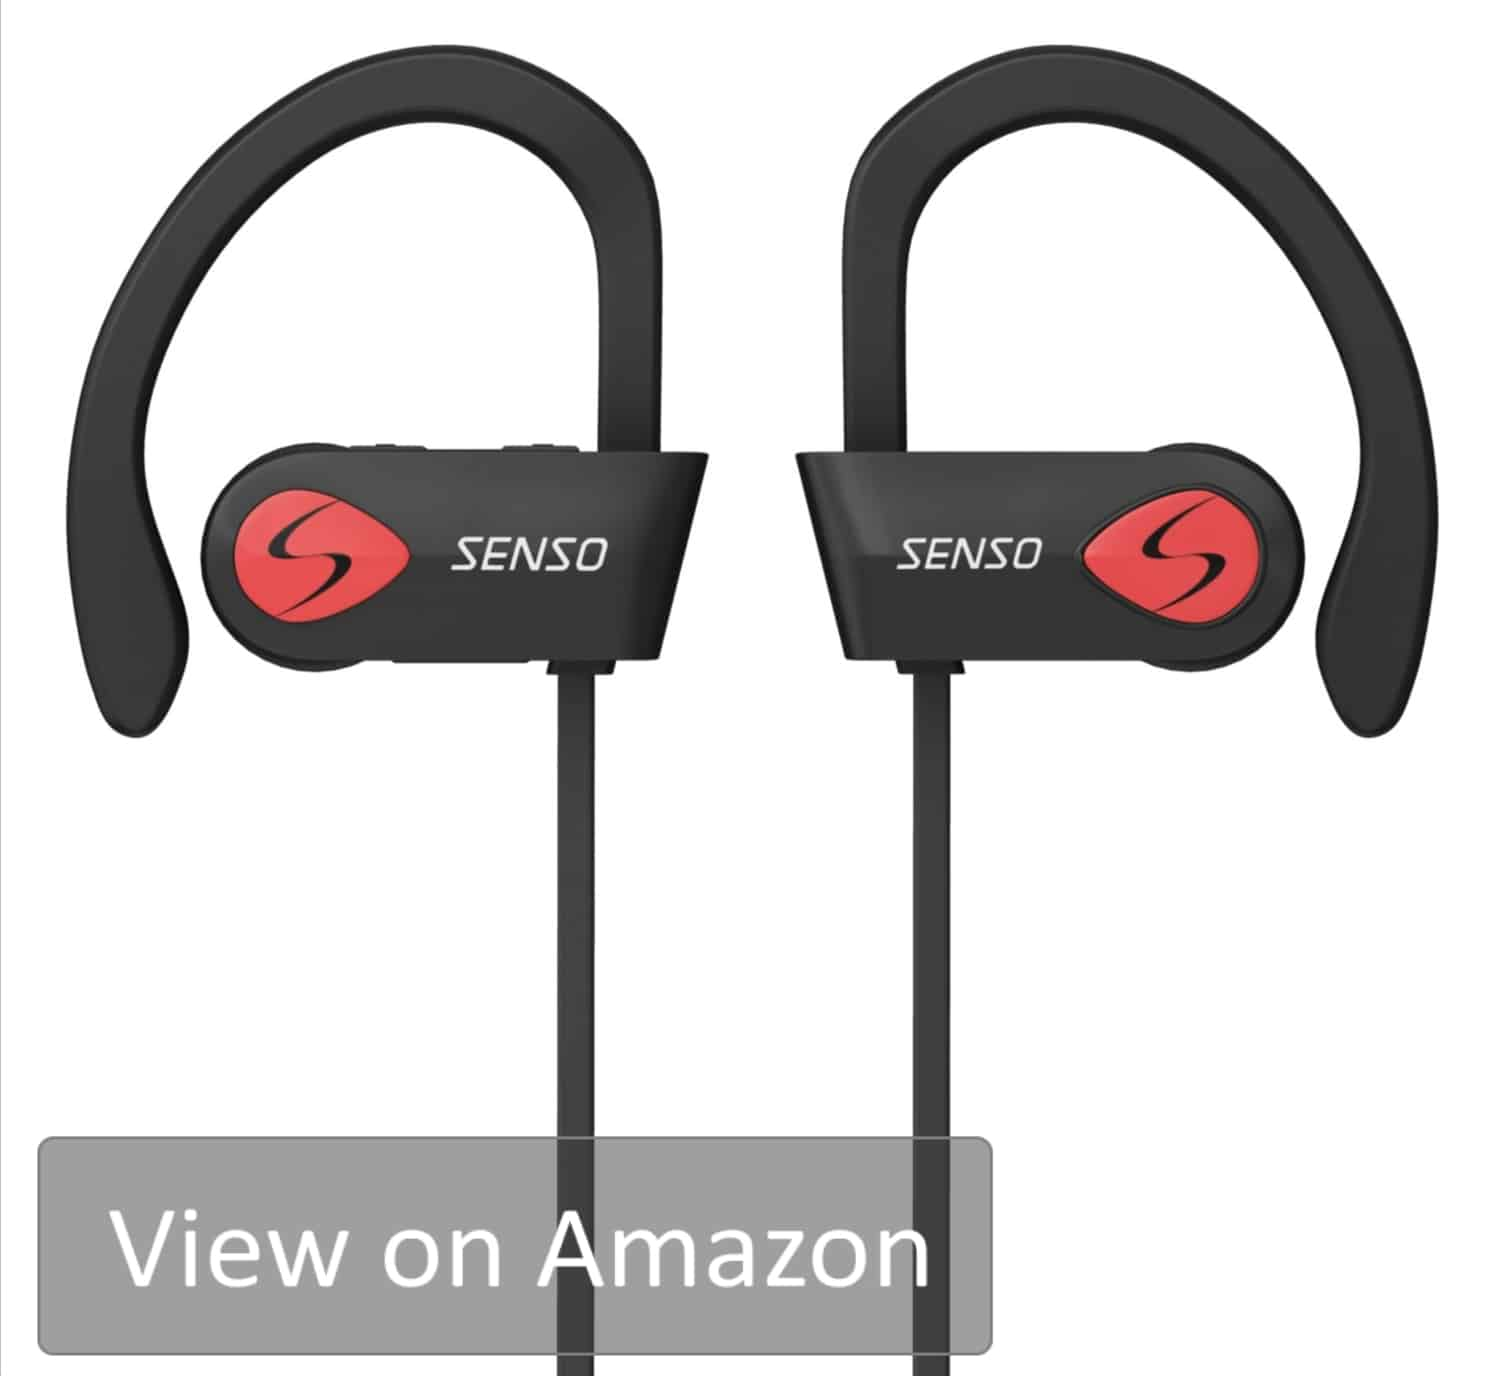 Senso ActivBuds S-250 are the best budget in ear headphones we have tested. There is nothing in that price range that feels more comfortable or sounds better.